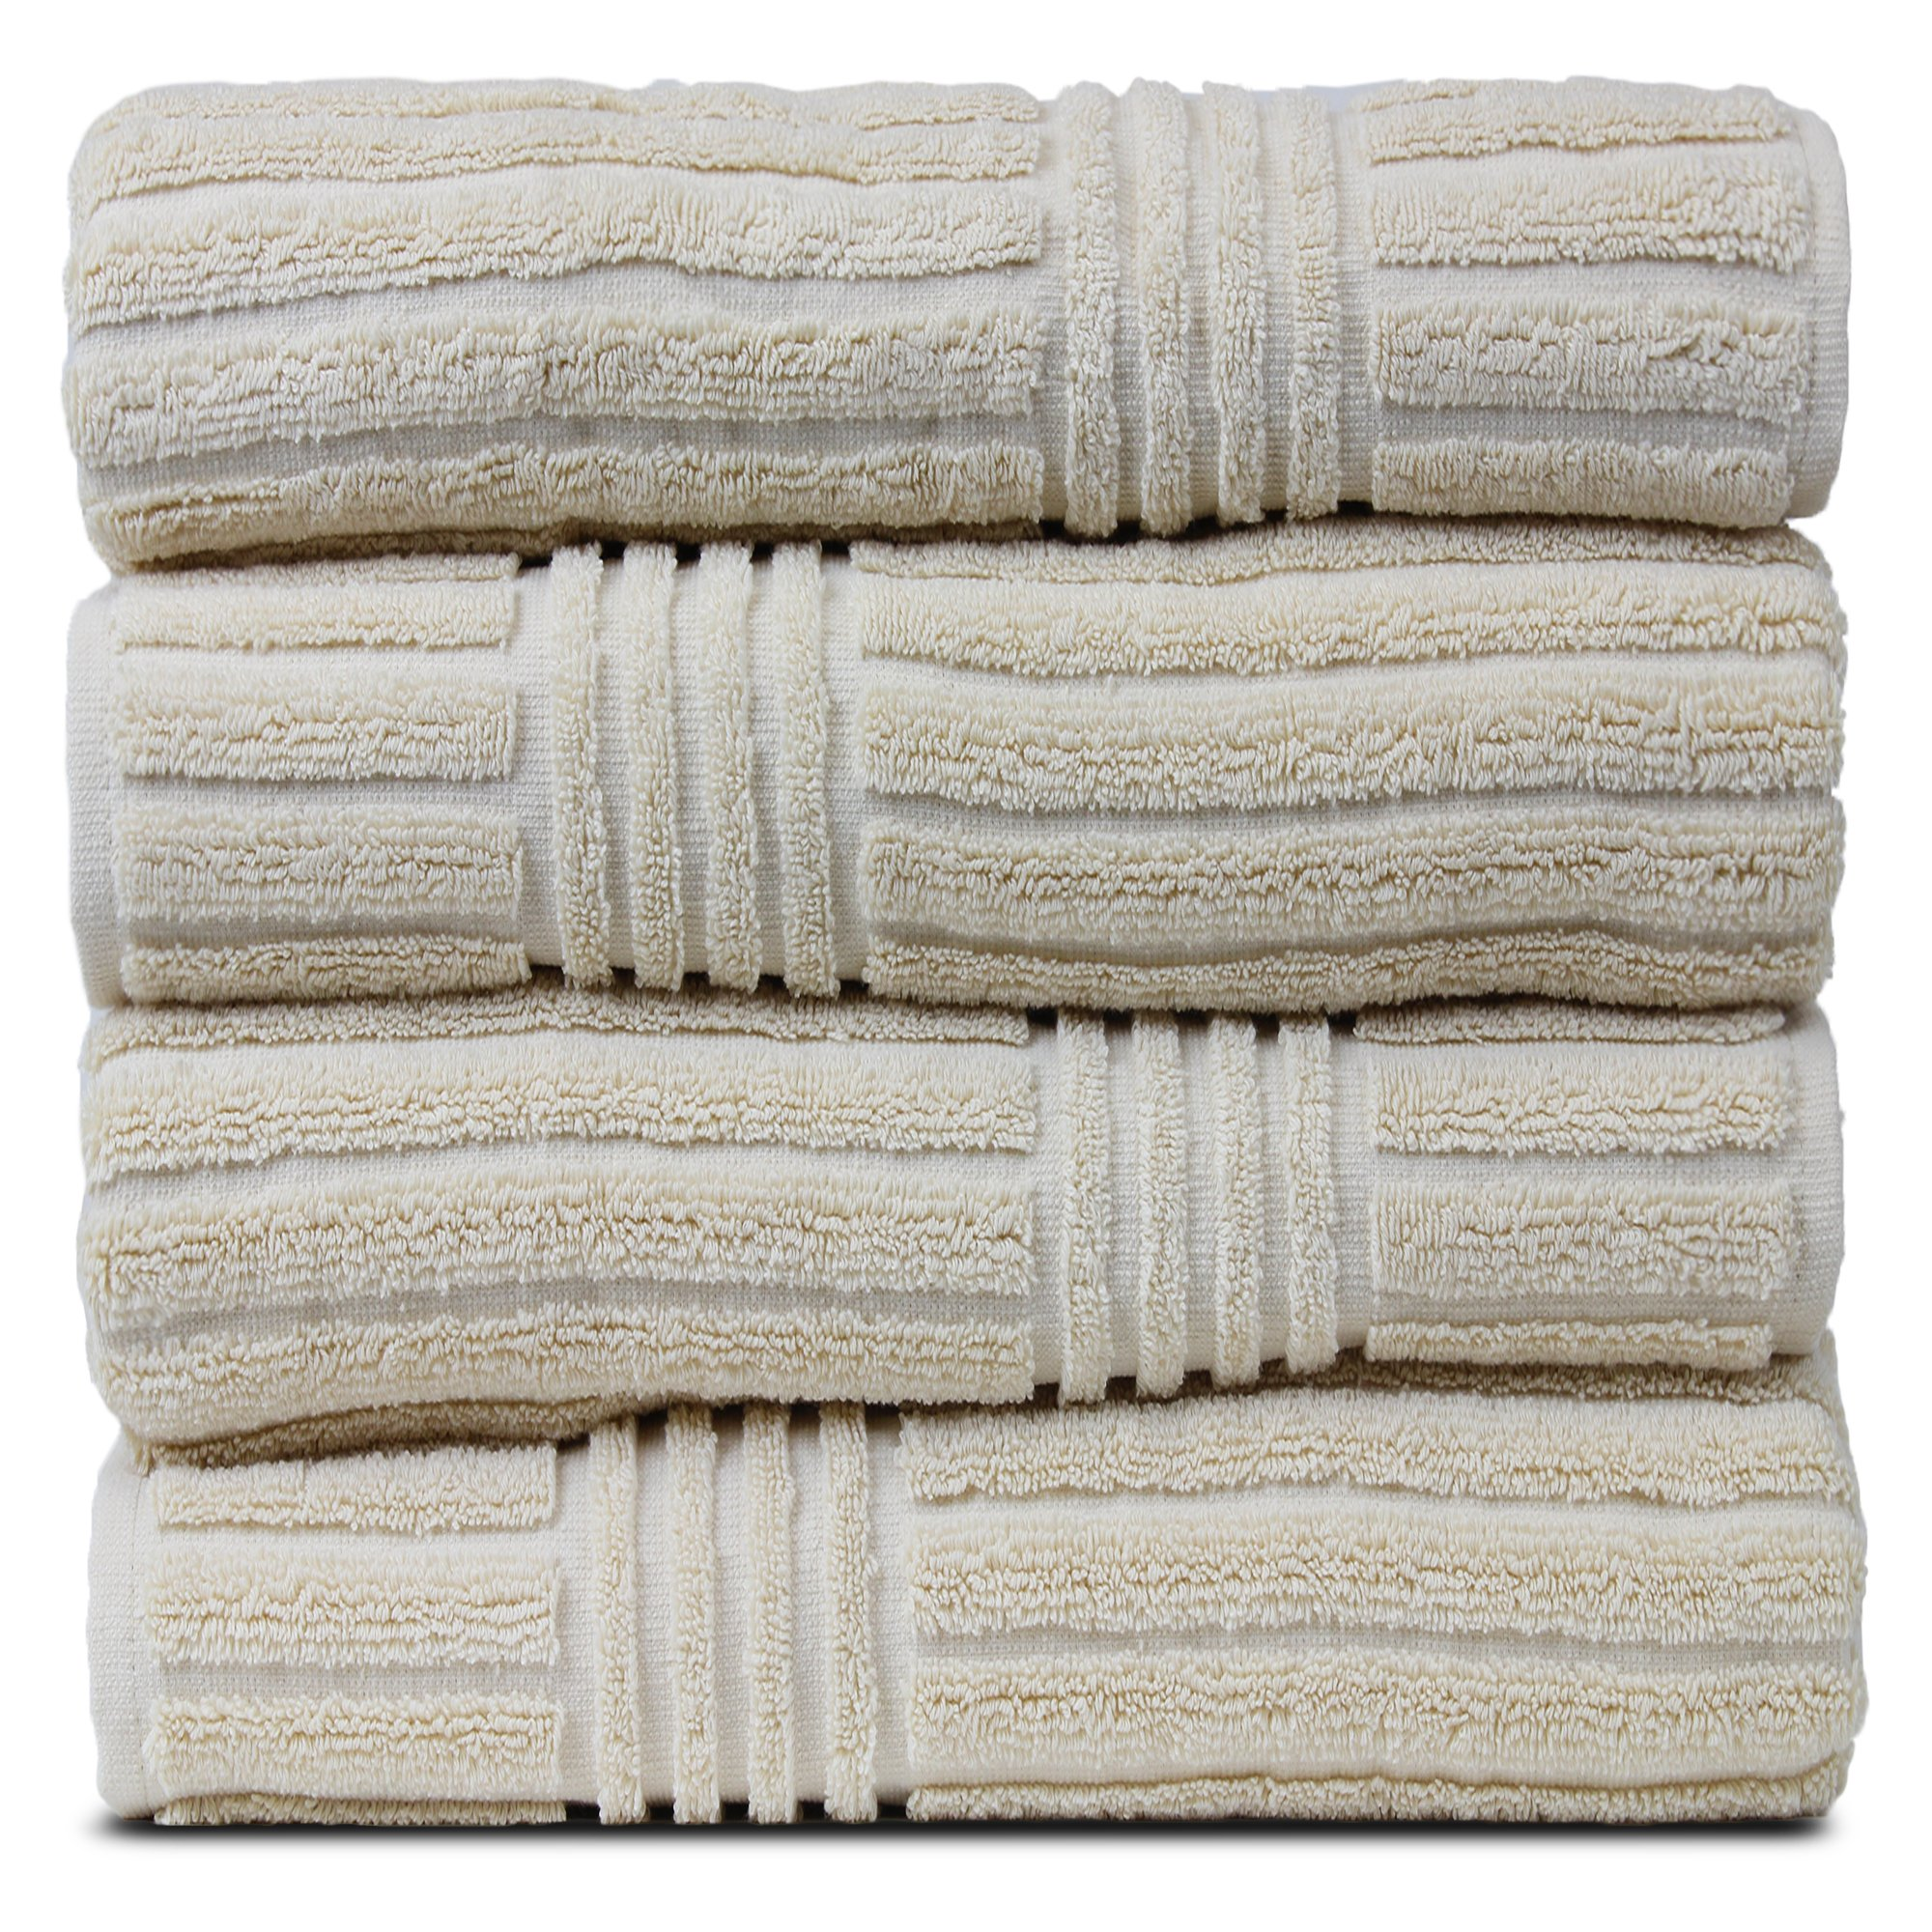 BC BARE COTTON Luxury Hotel & Spa Towel 100% Natural Turkish Cotton Ribbed Channel Pattern Bath (Set of 4), Beige